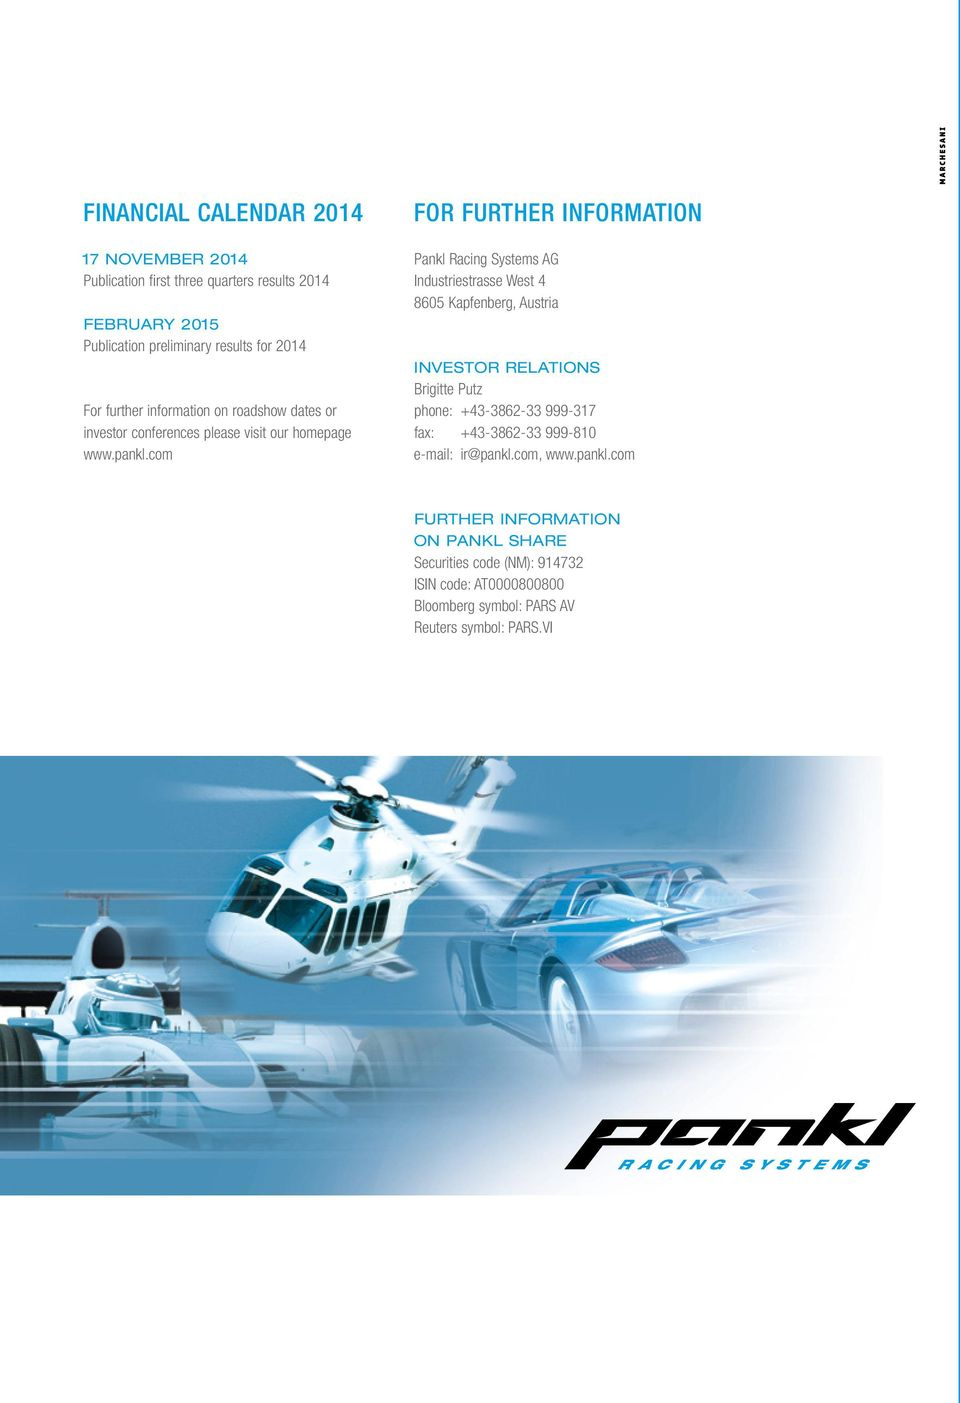 com FOR FURTHER INFORMATION Pankl Racing Systems AG Industriestrasse West 4 8605 Kapfenberg, Austria INVESTOR RELATIONS Brigitte Putz phone: